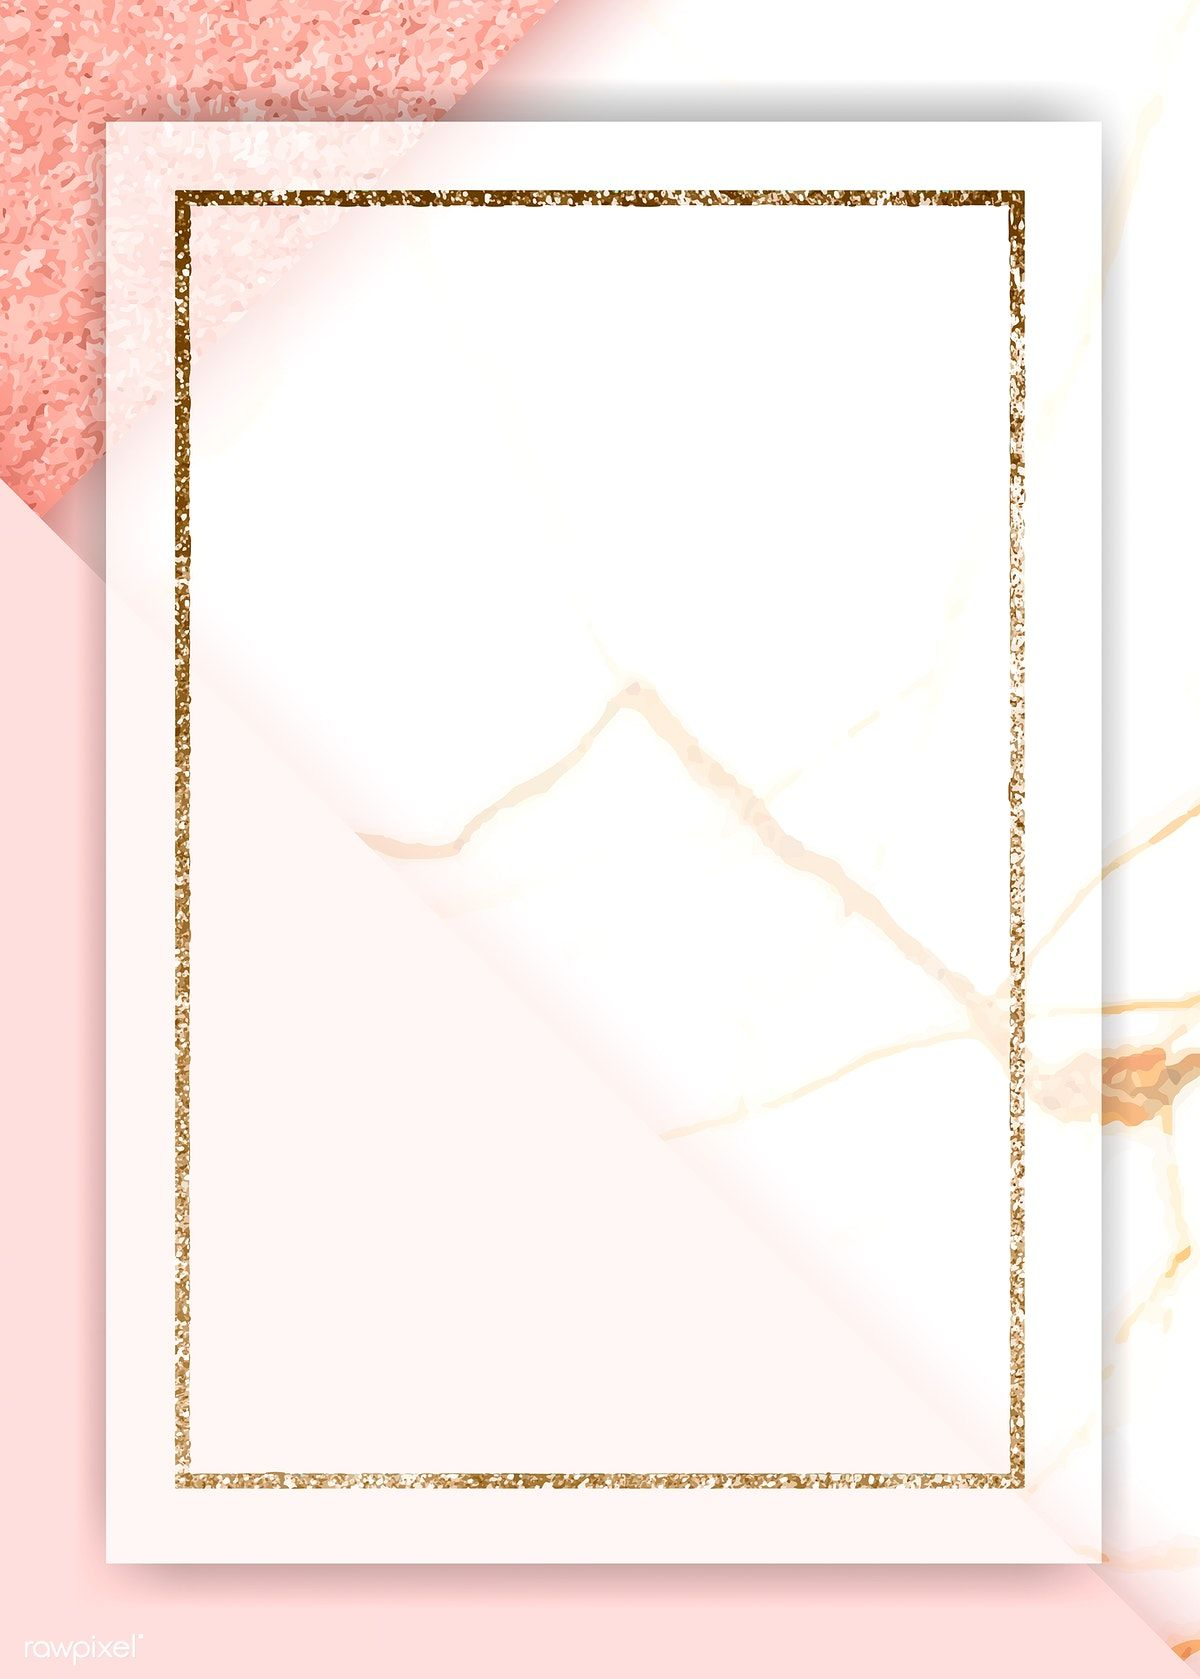 Download premium illustration of Gold rectangle frame on pink background